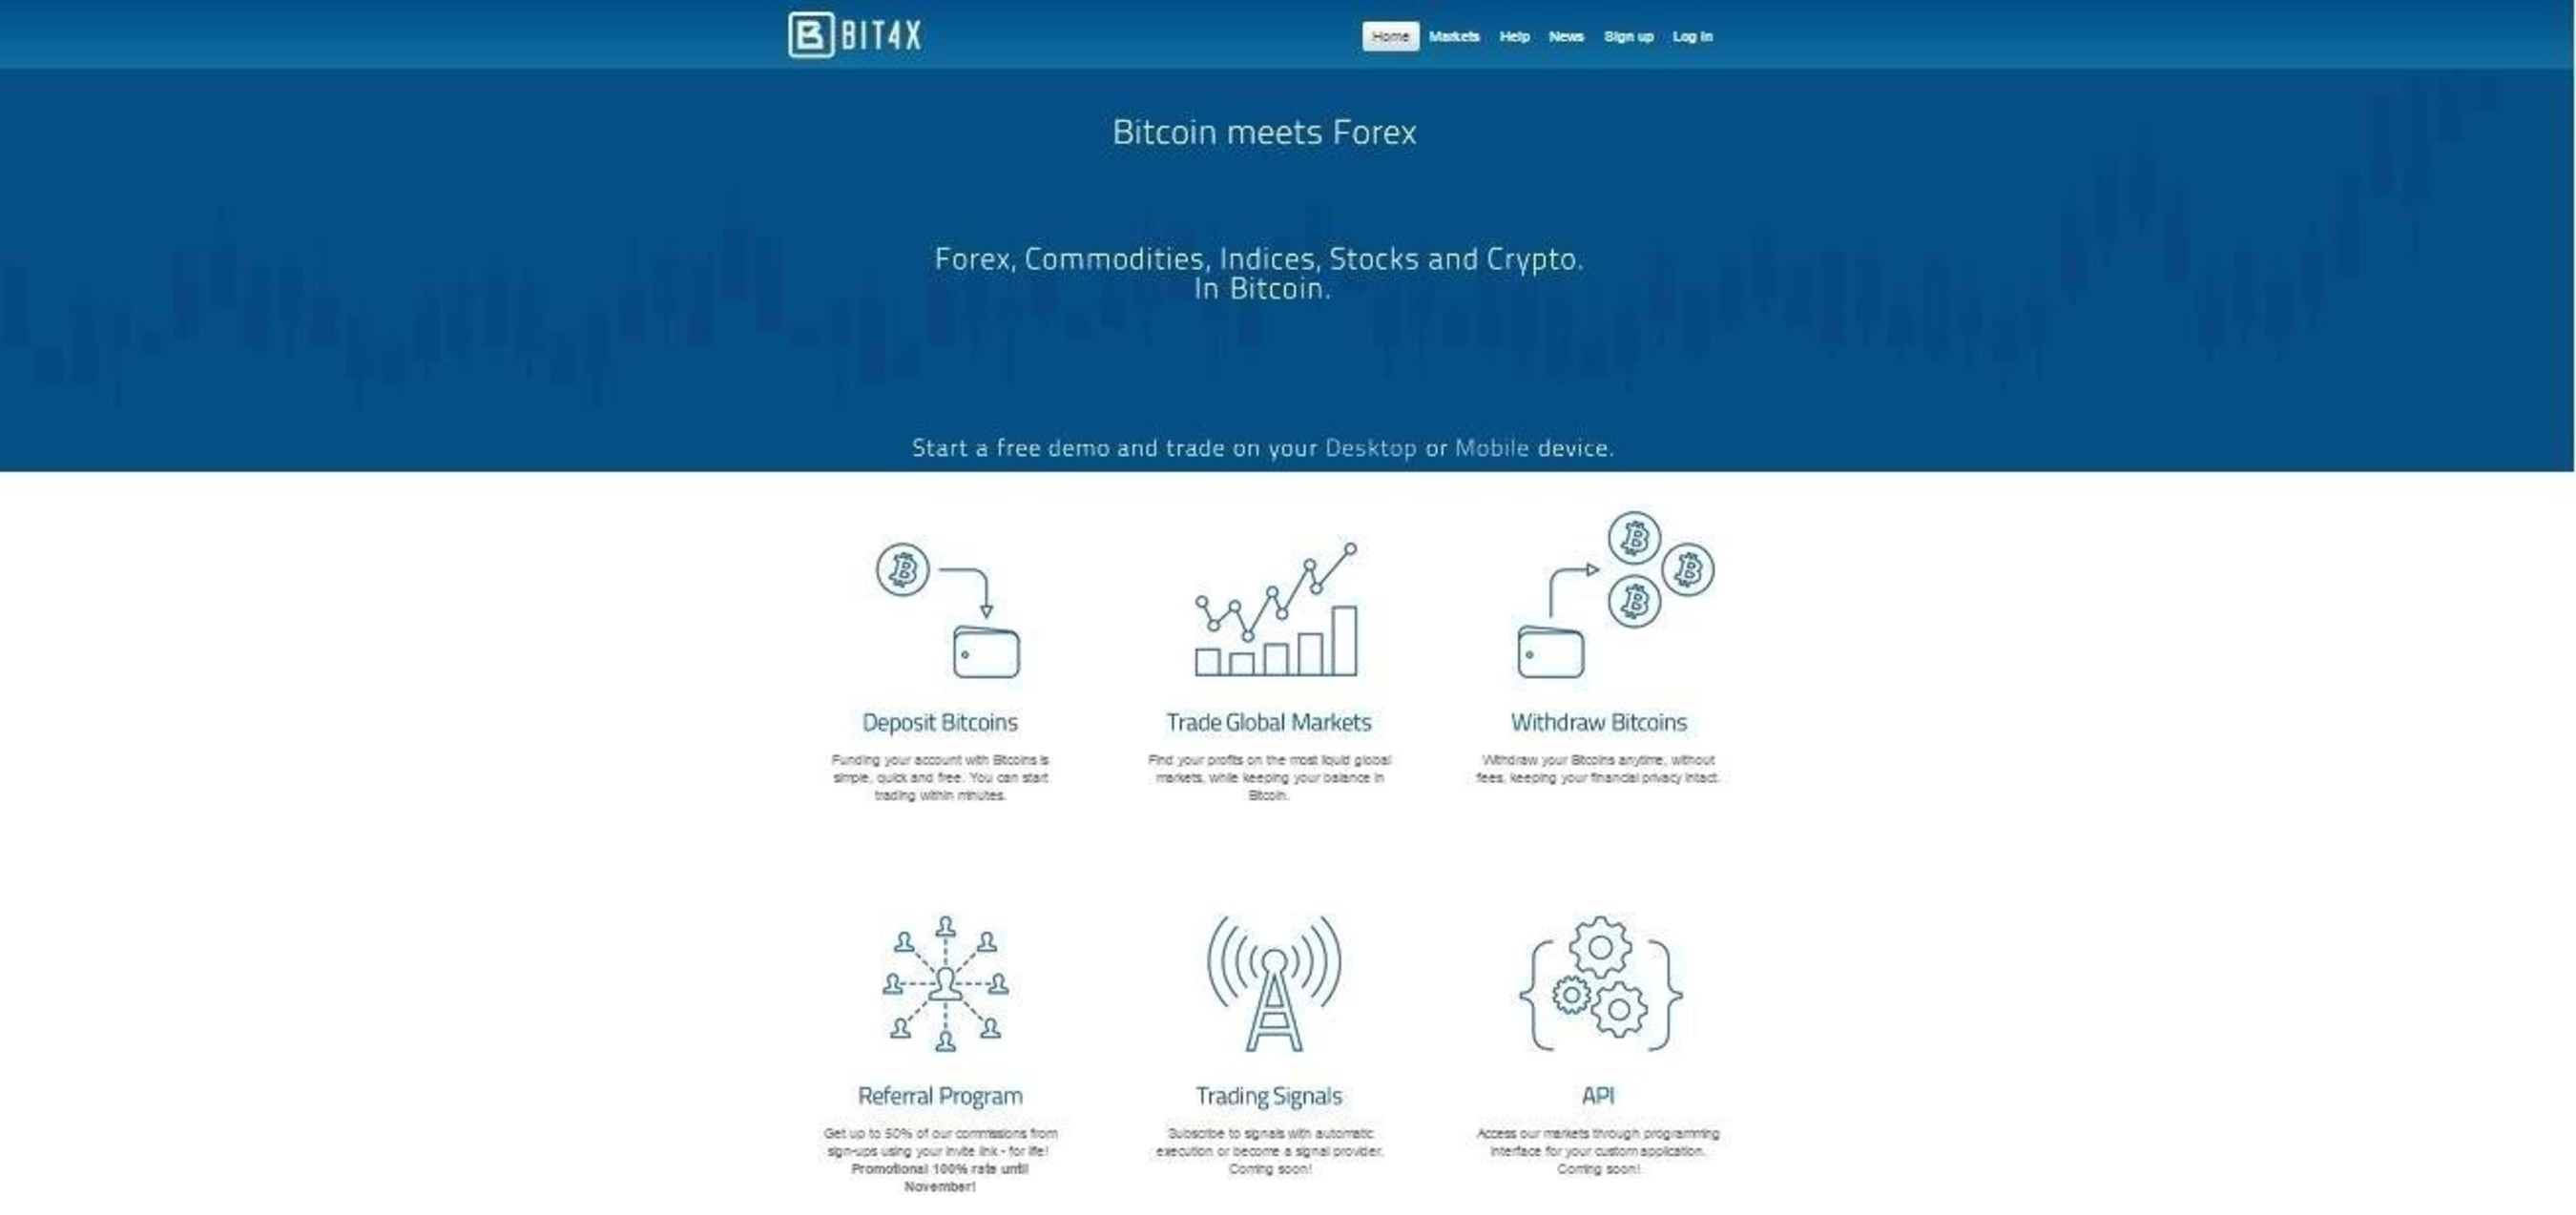 Bitcoin CFD Trading Platform Bit4x Launches New Clients Account Manager and Generous Referral